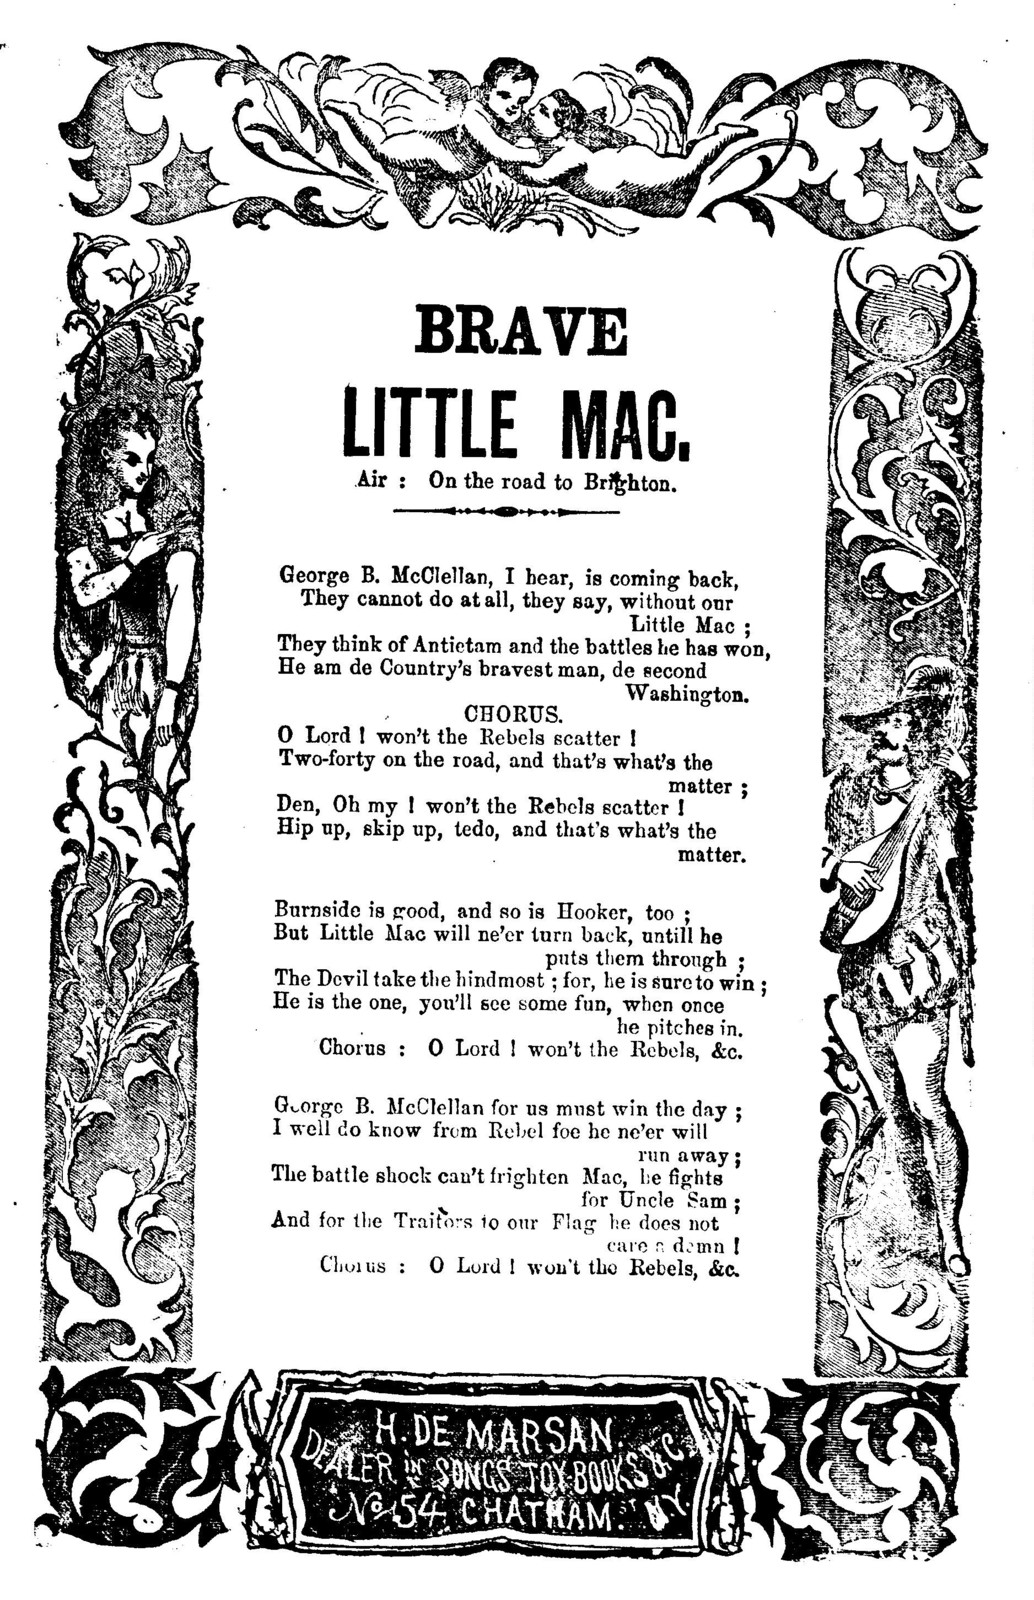 Brave little Mac. Air: On the road to Brighton. H. De Marsan, Publisher, ... 54 Chatham St. N.Y